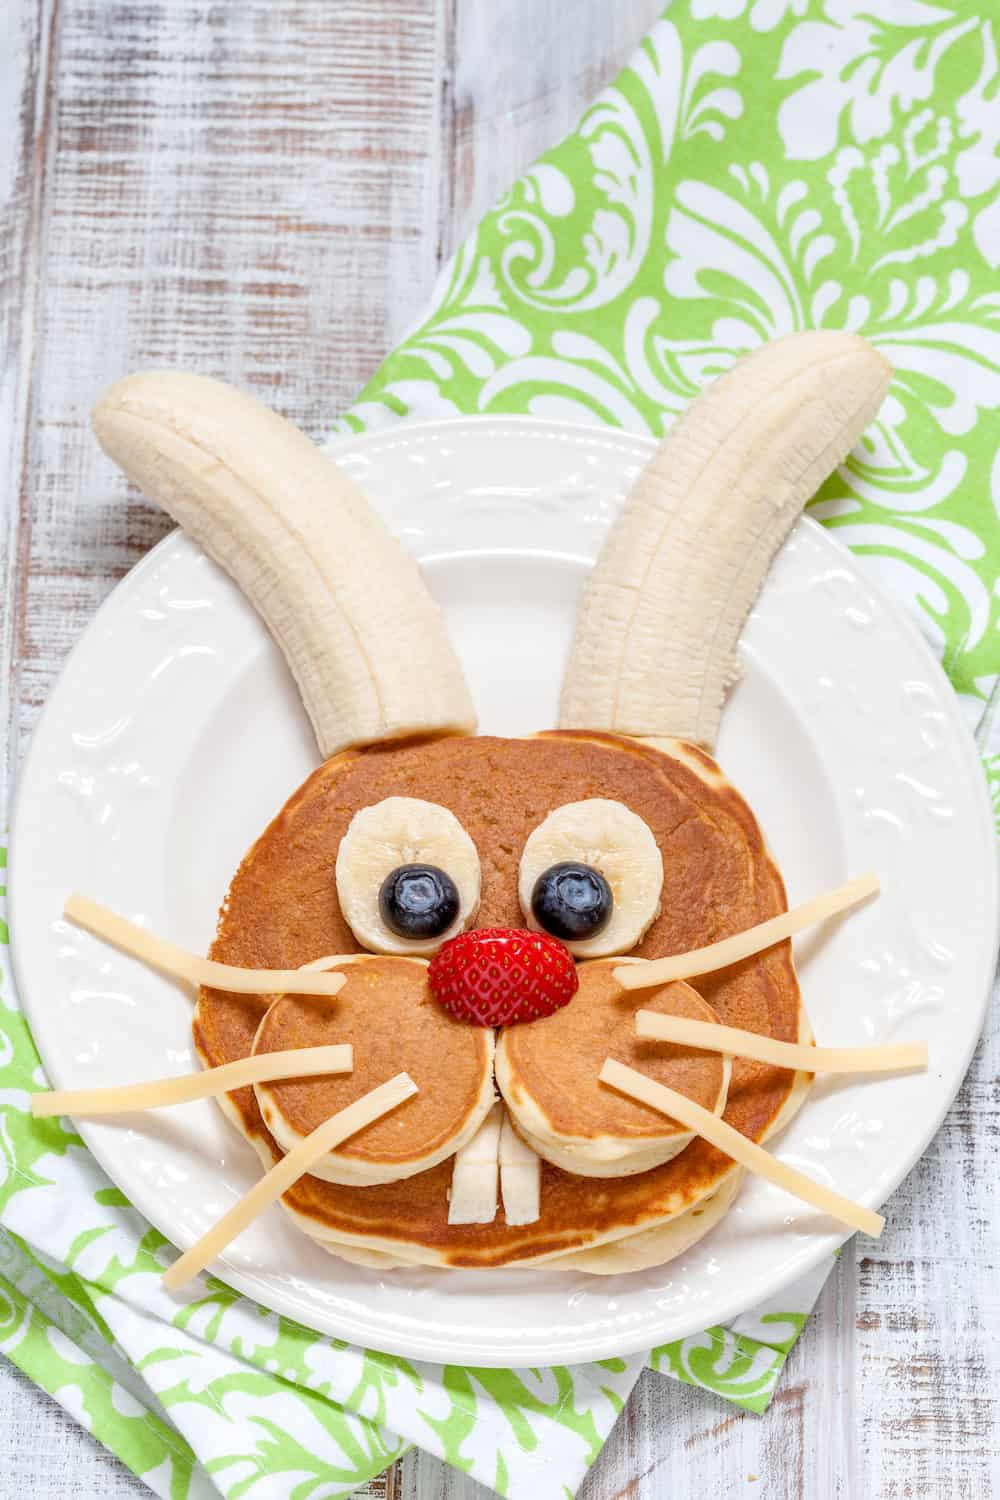 Easter breakfast ideas - Easter bunny pancakes